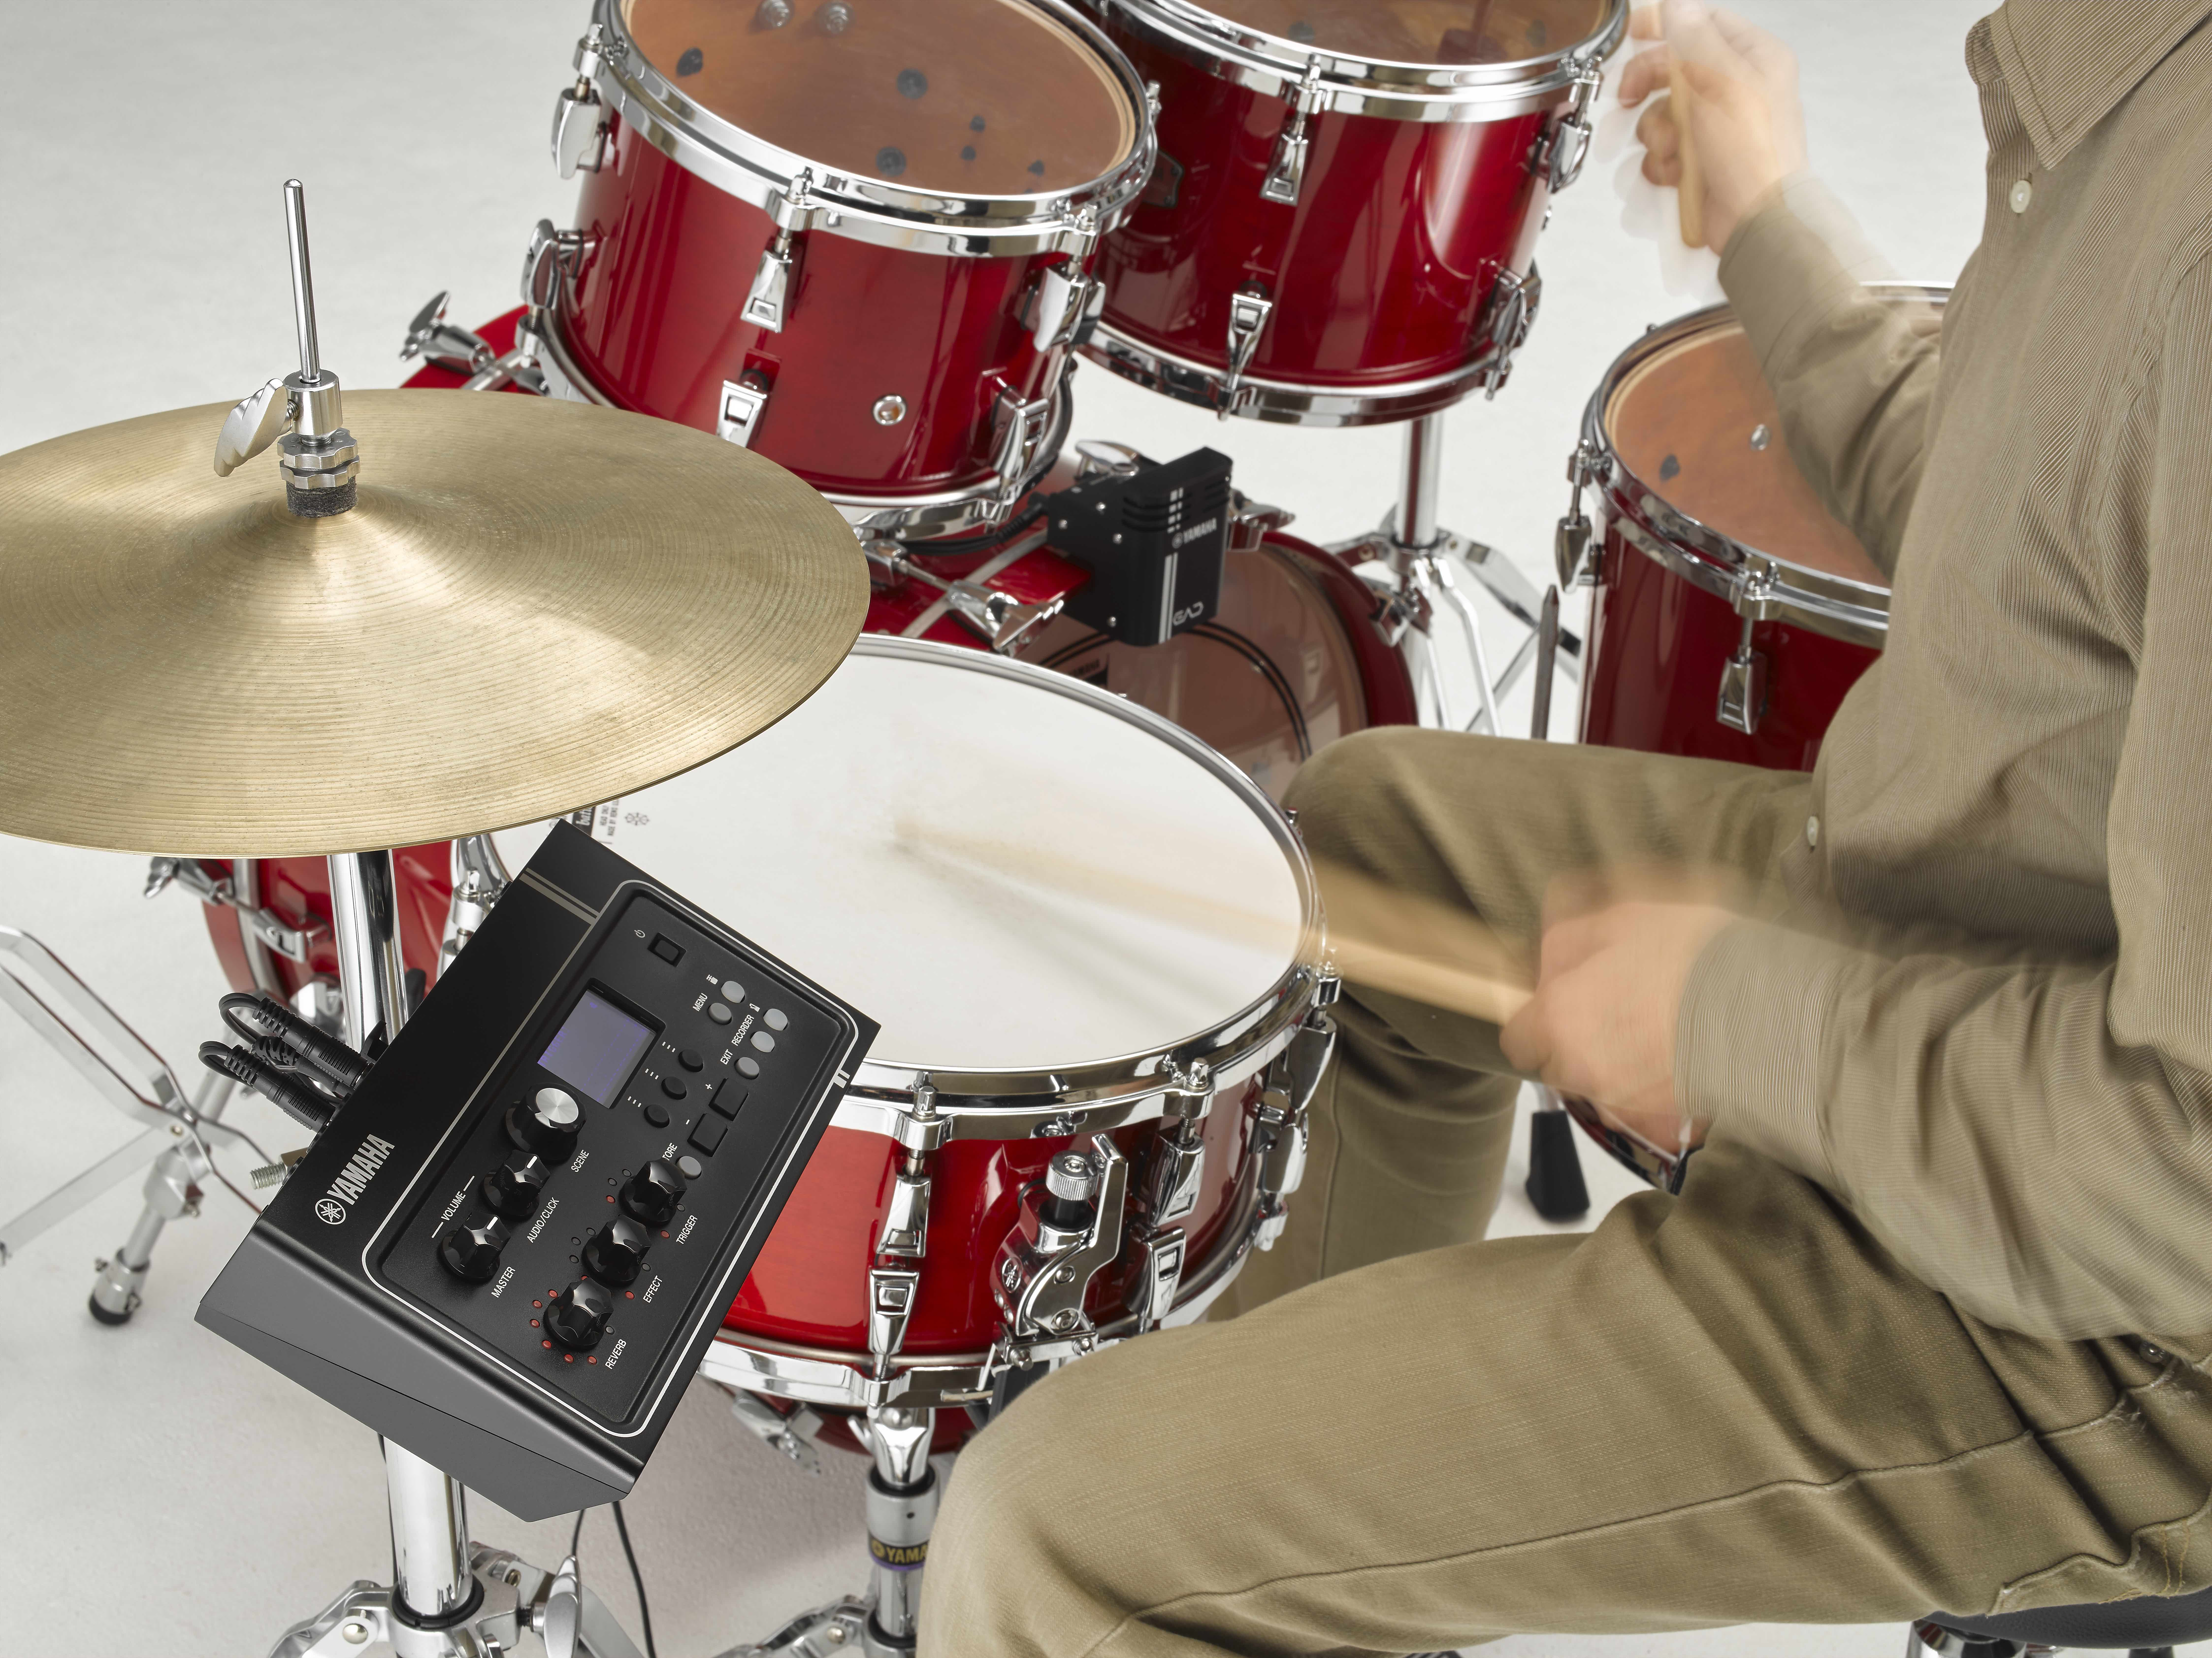 revolutionary yamaha ead10 drum module helps drummers turn an acoustic set into a dynamic. Black Bedroom Furniture Sets. Home Design Ideas